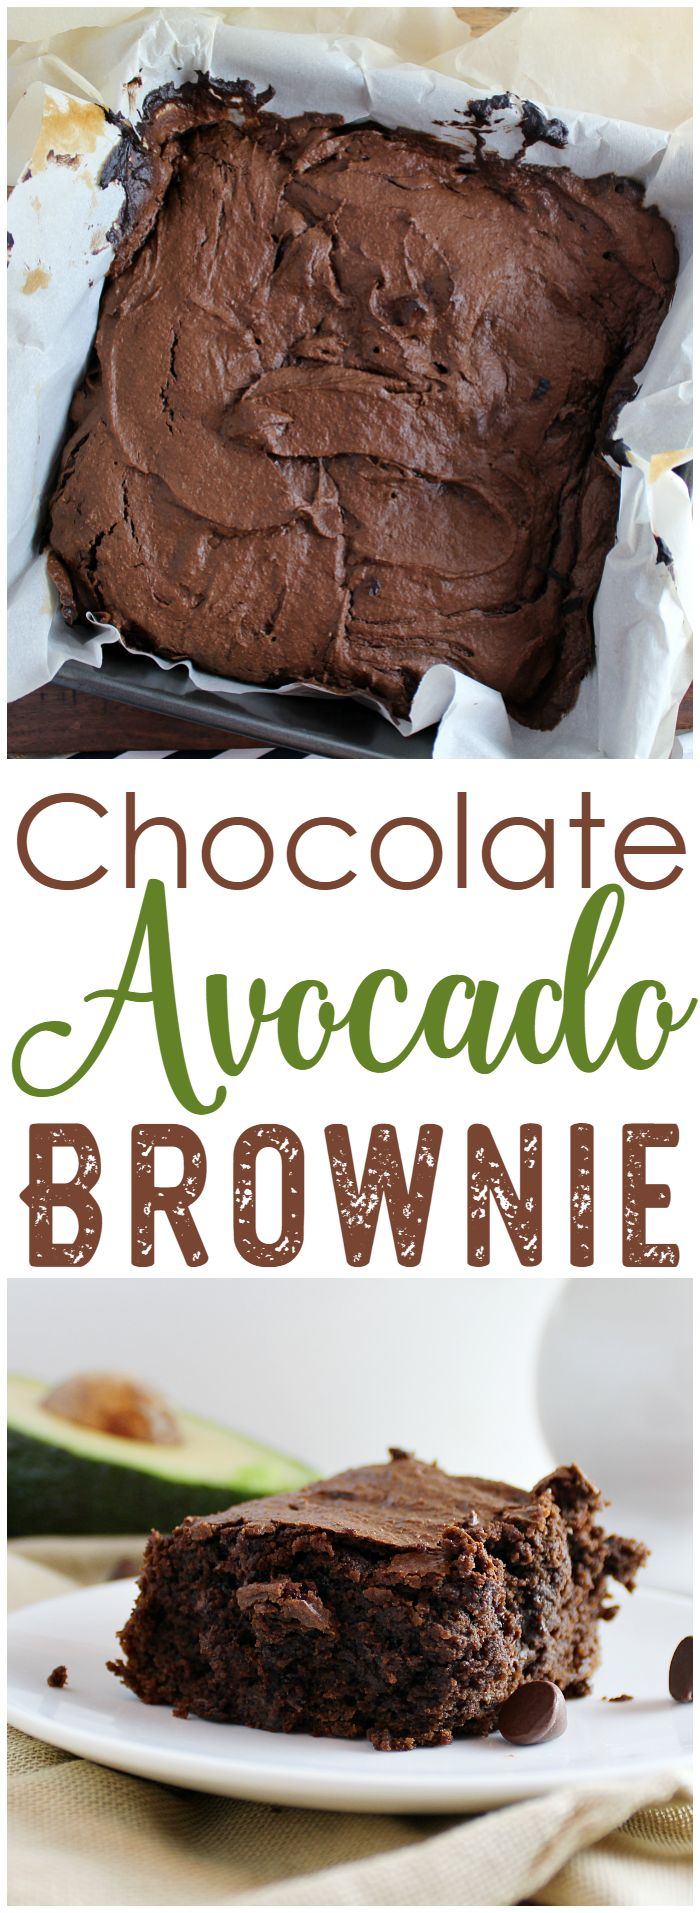 A rich, chocolate, better-for-you brownie! Make these Chocolate Avocado Brownies to get you through when you're craving something delicious! #WhatMattersToU AD